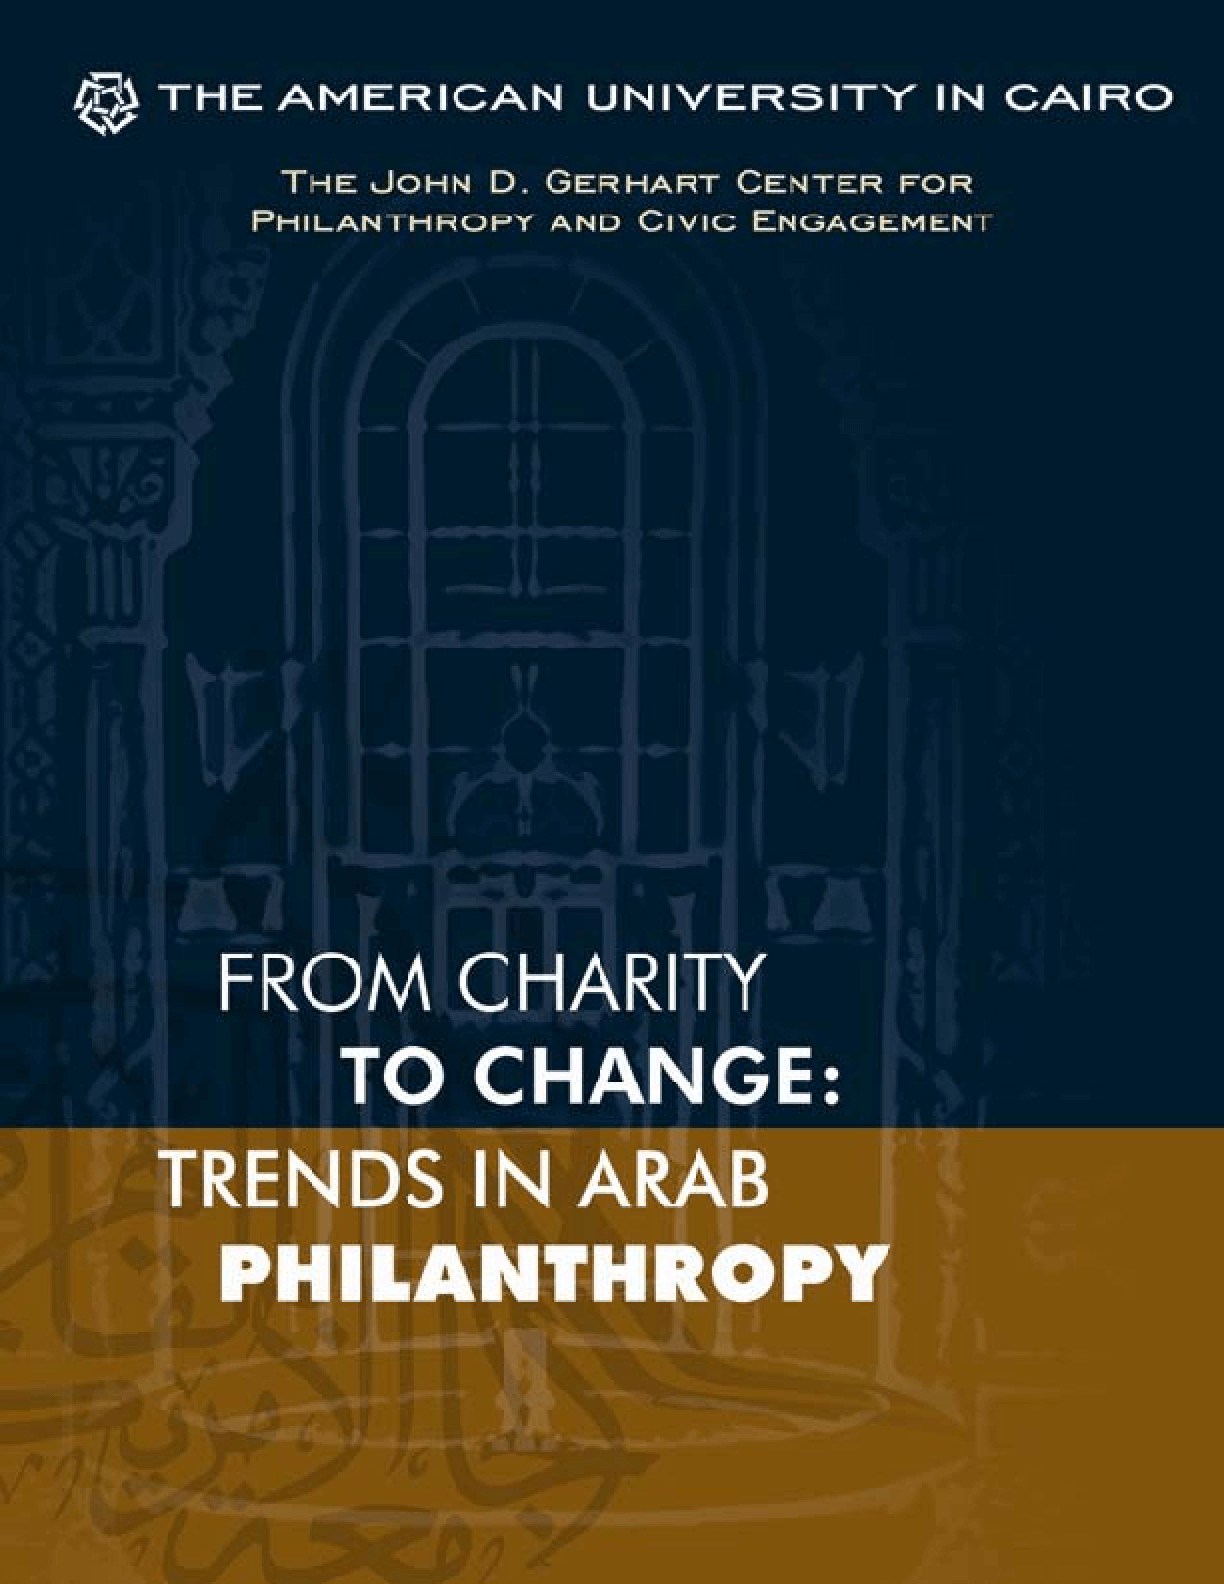 From Charity to Change: Trends in Arab Philanthropy